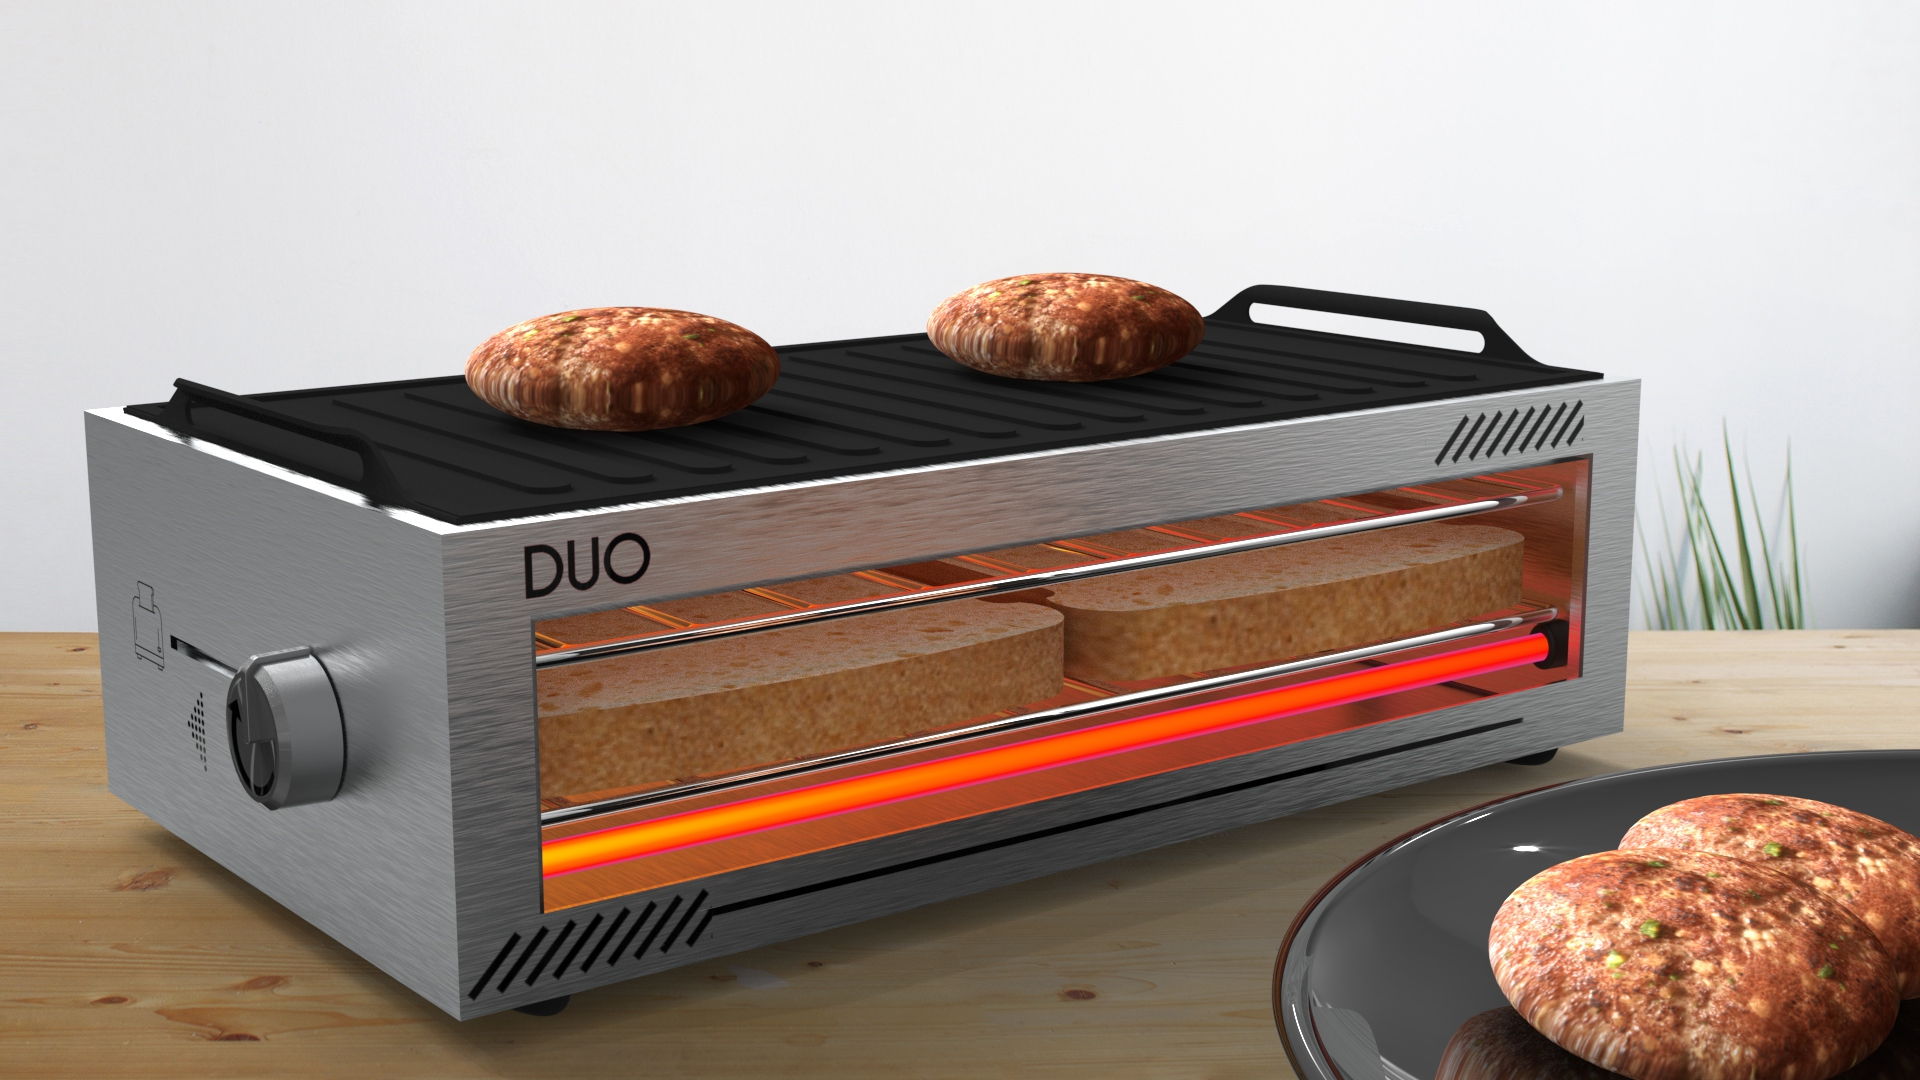 DUO - redesign eines Toasters